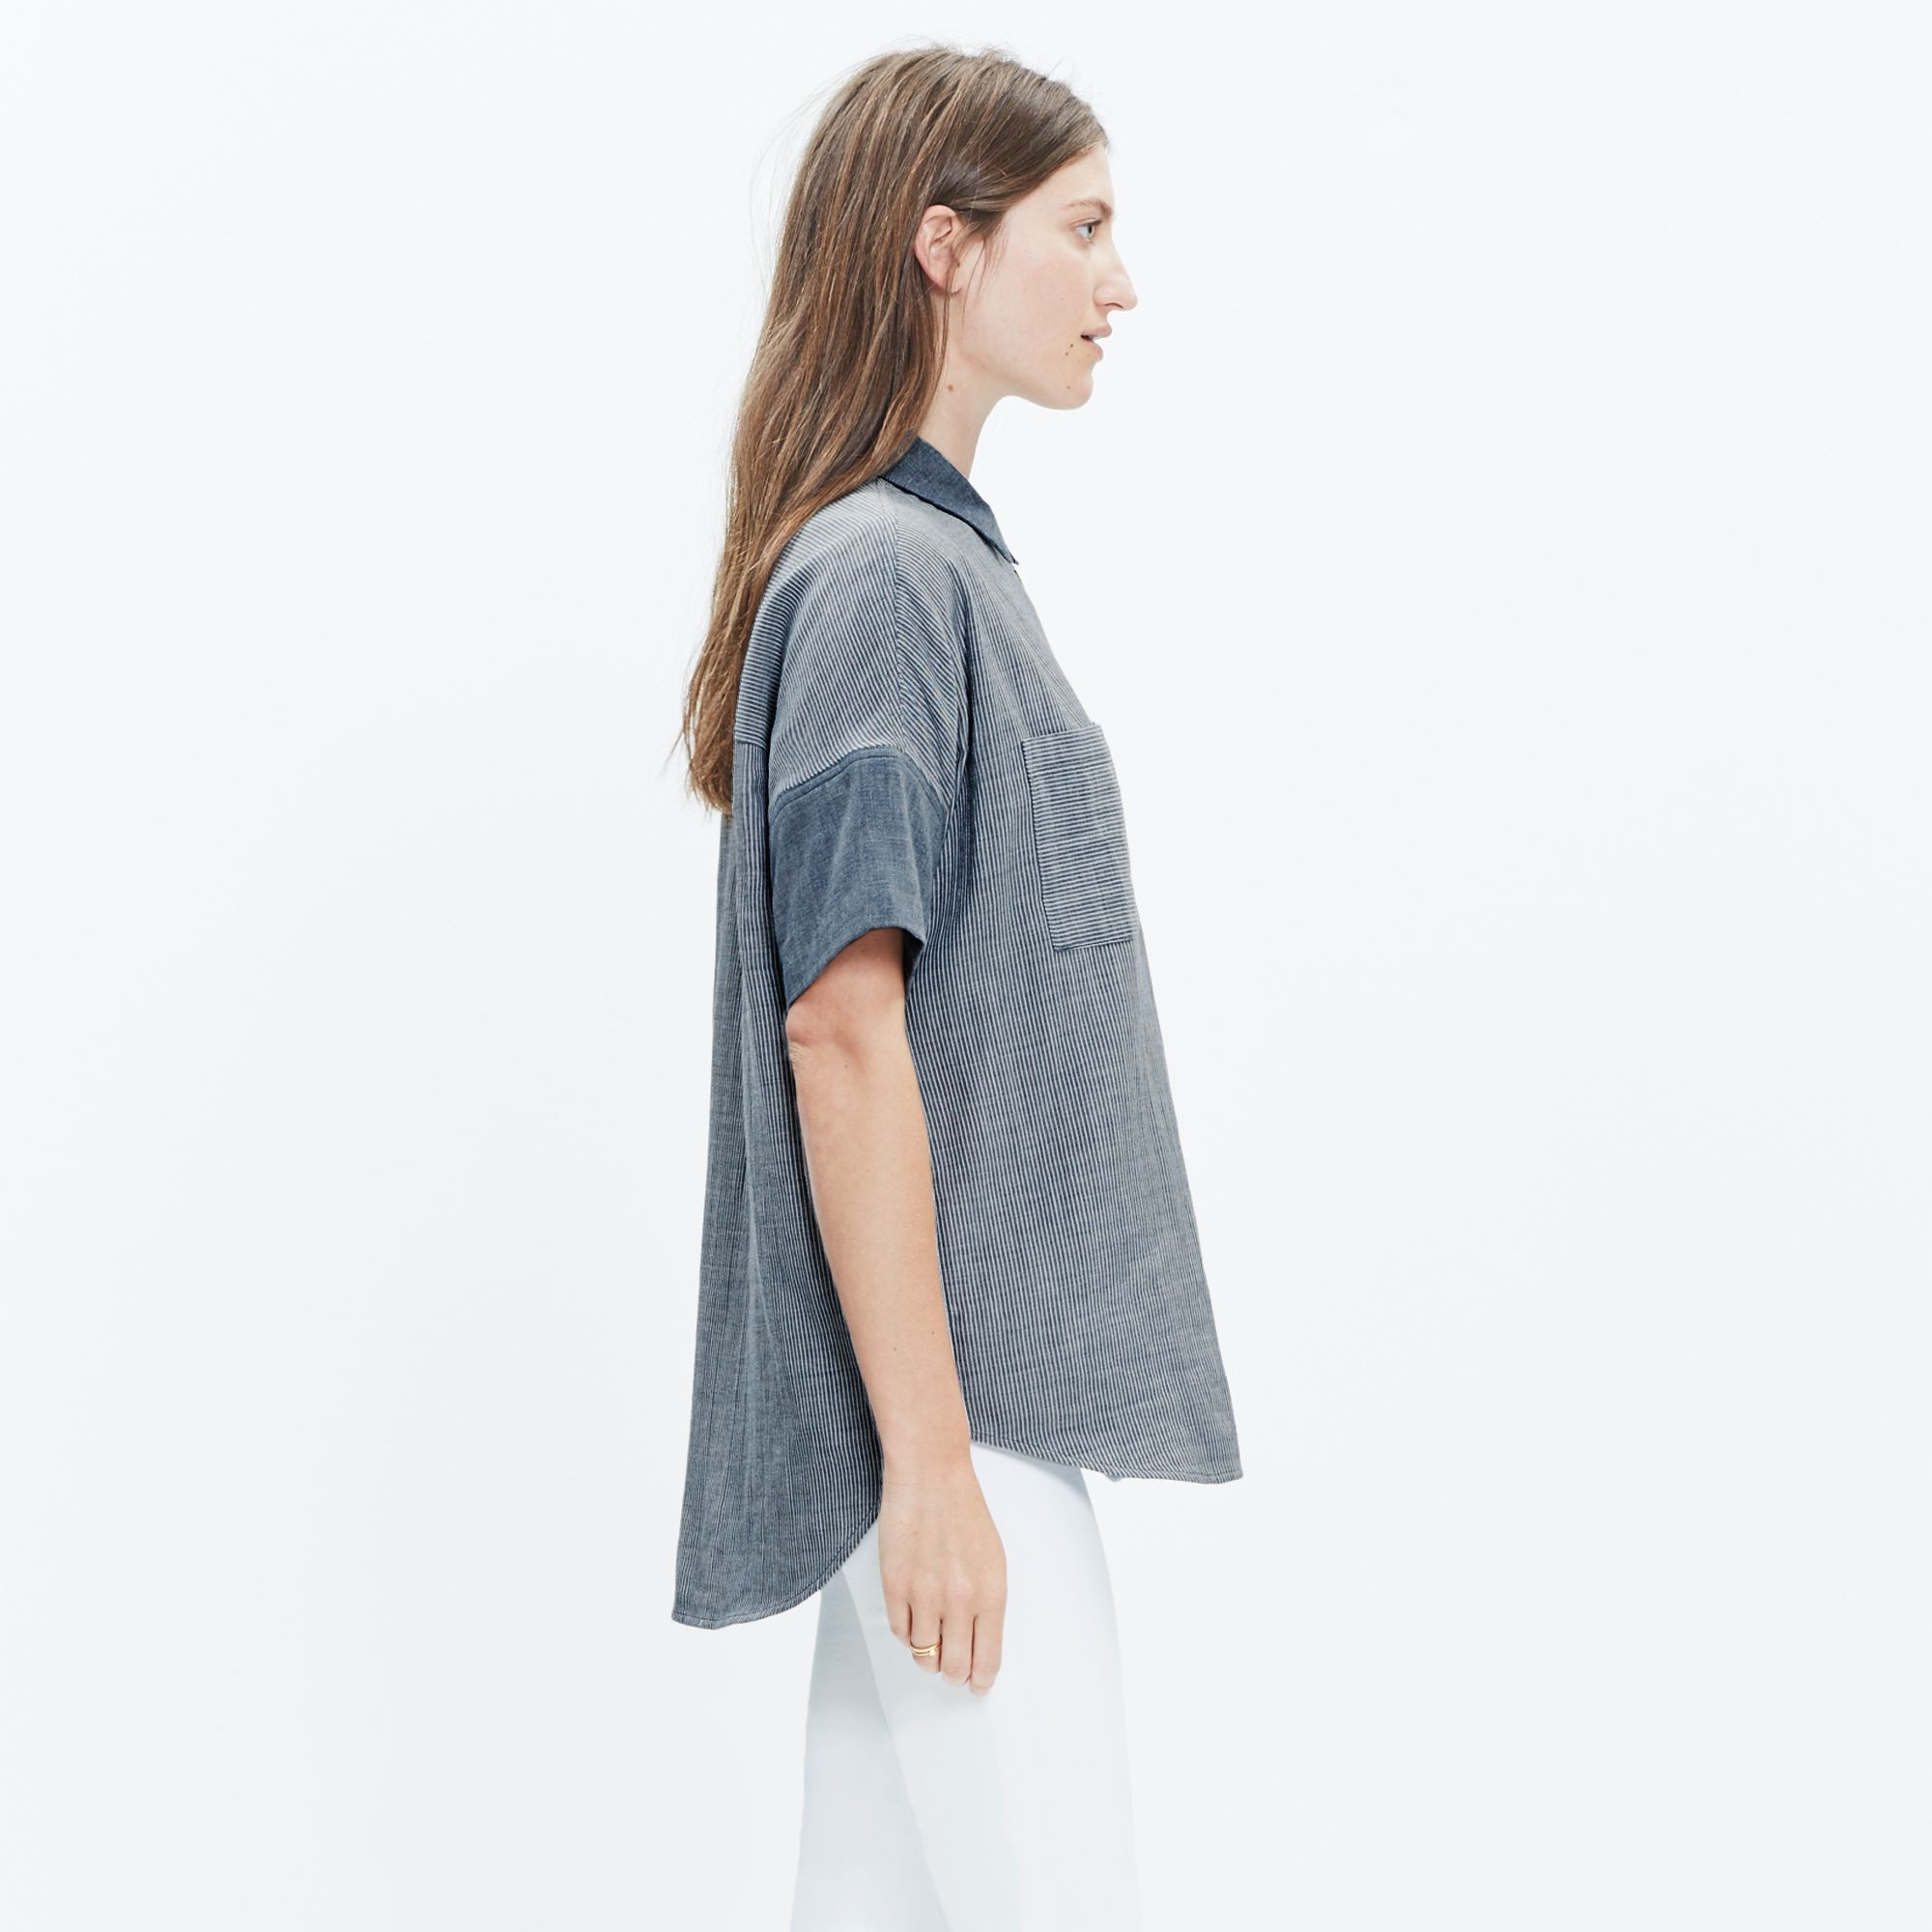 8c7ade42 Madewell Courier Shirt In Lilydale Stripe in Gray - Lyst